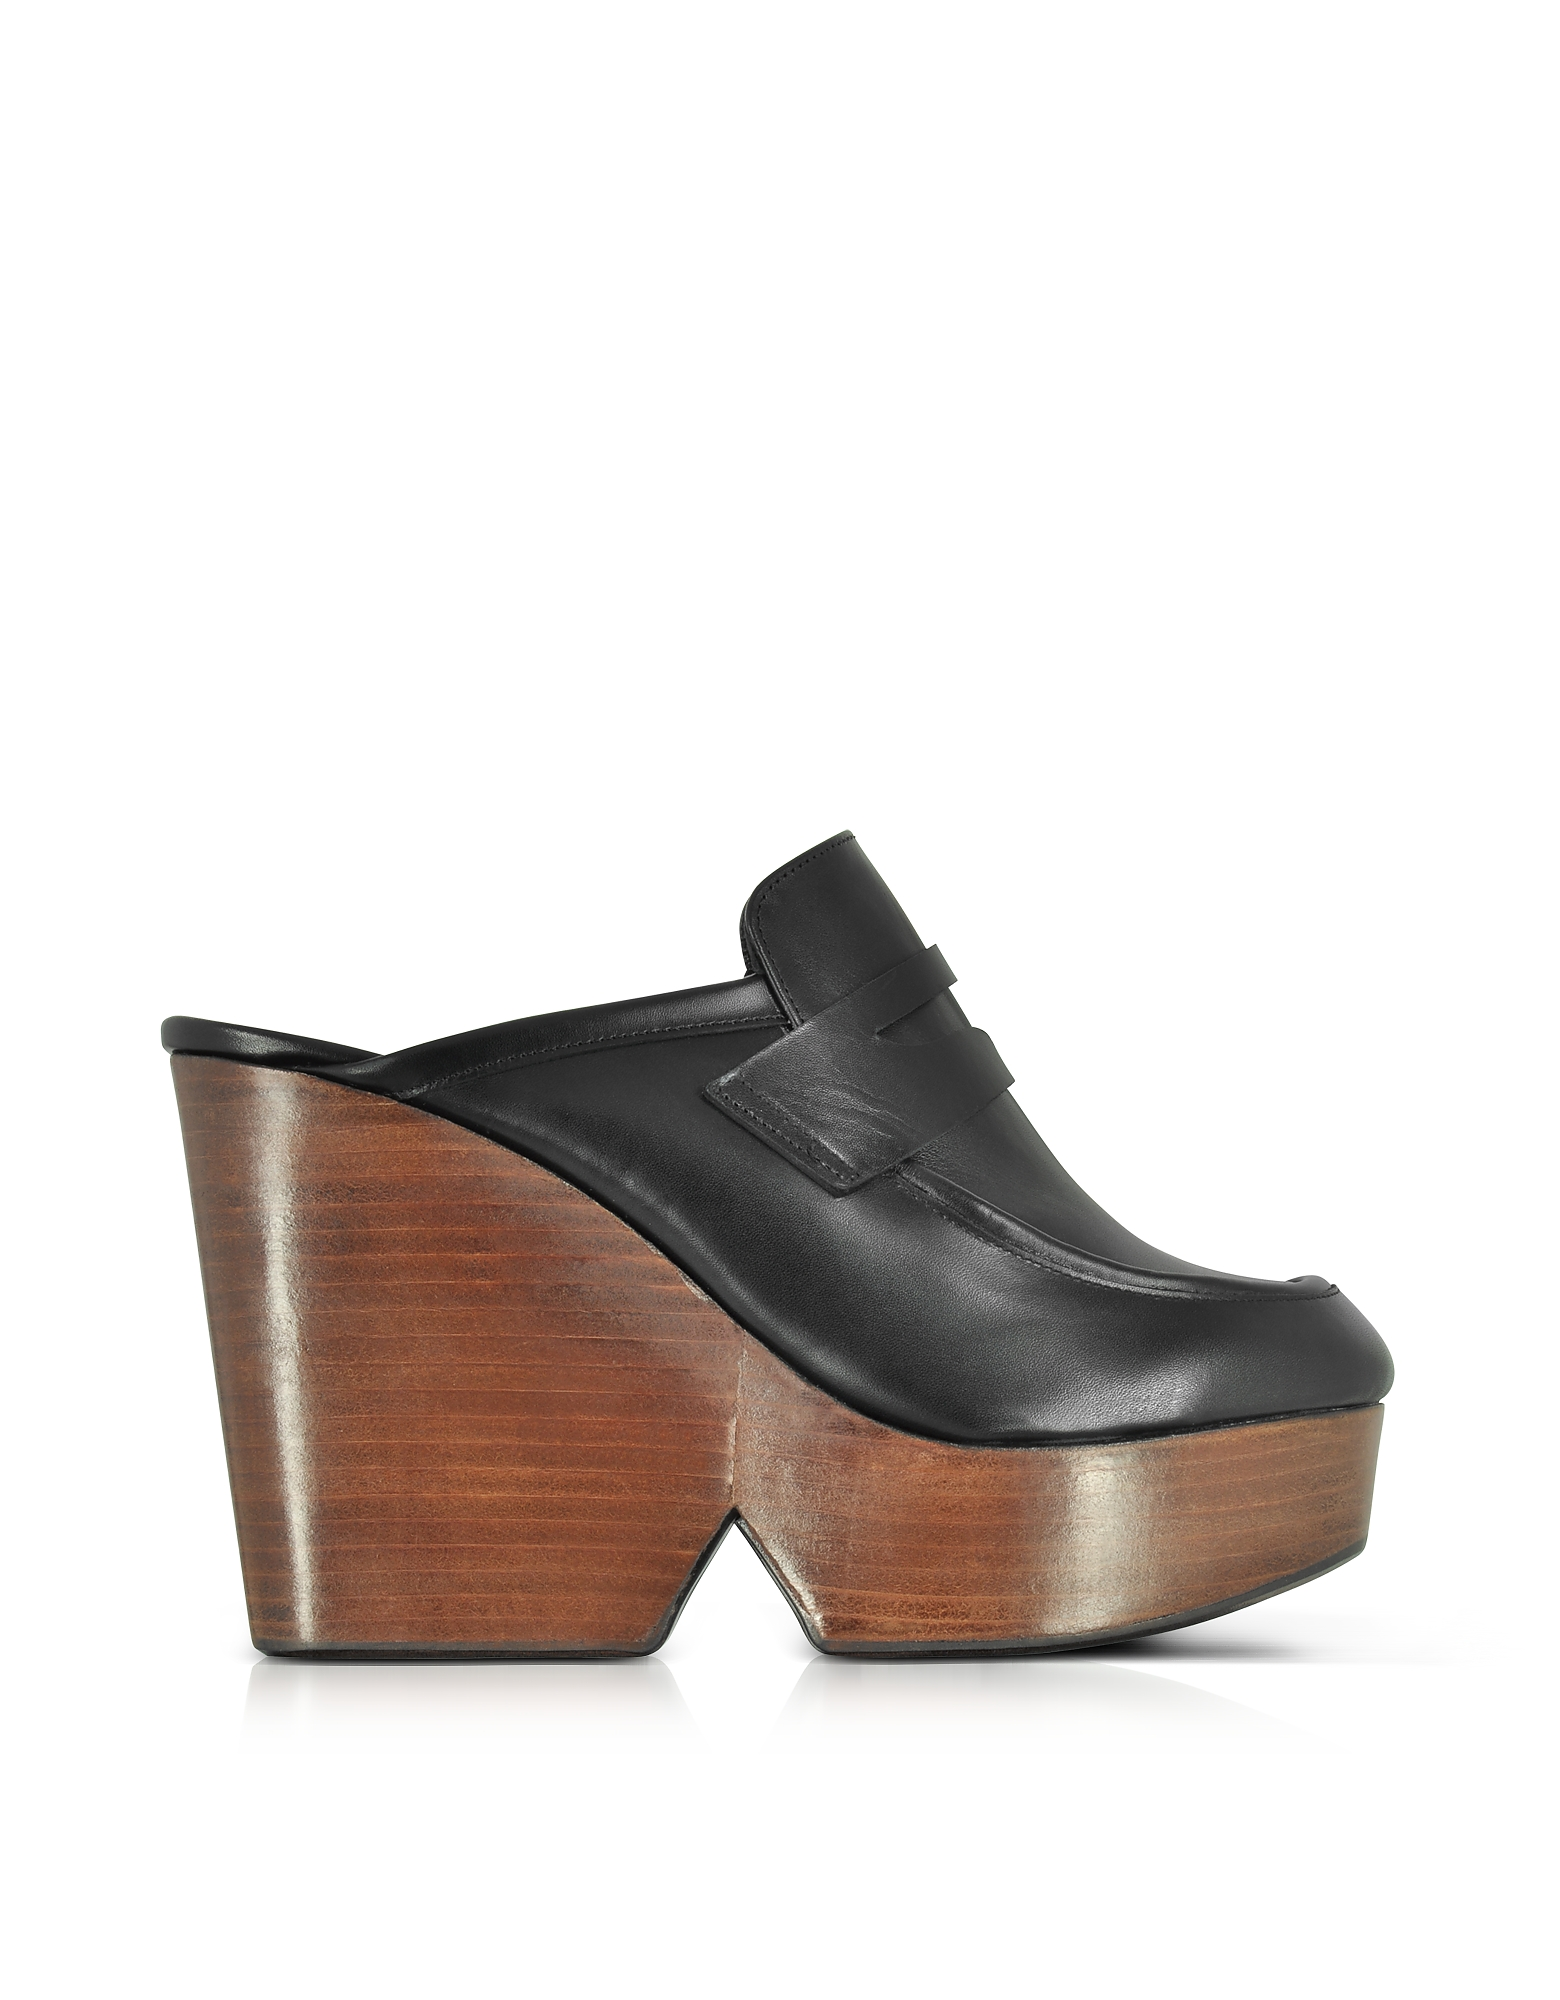 Robert Clergerie Shoes, Damor Black Leather Wedge Mule